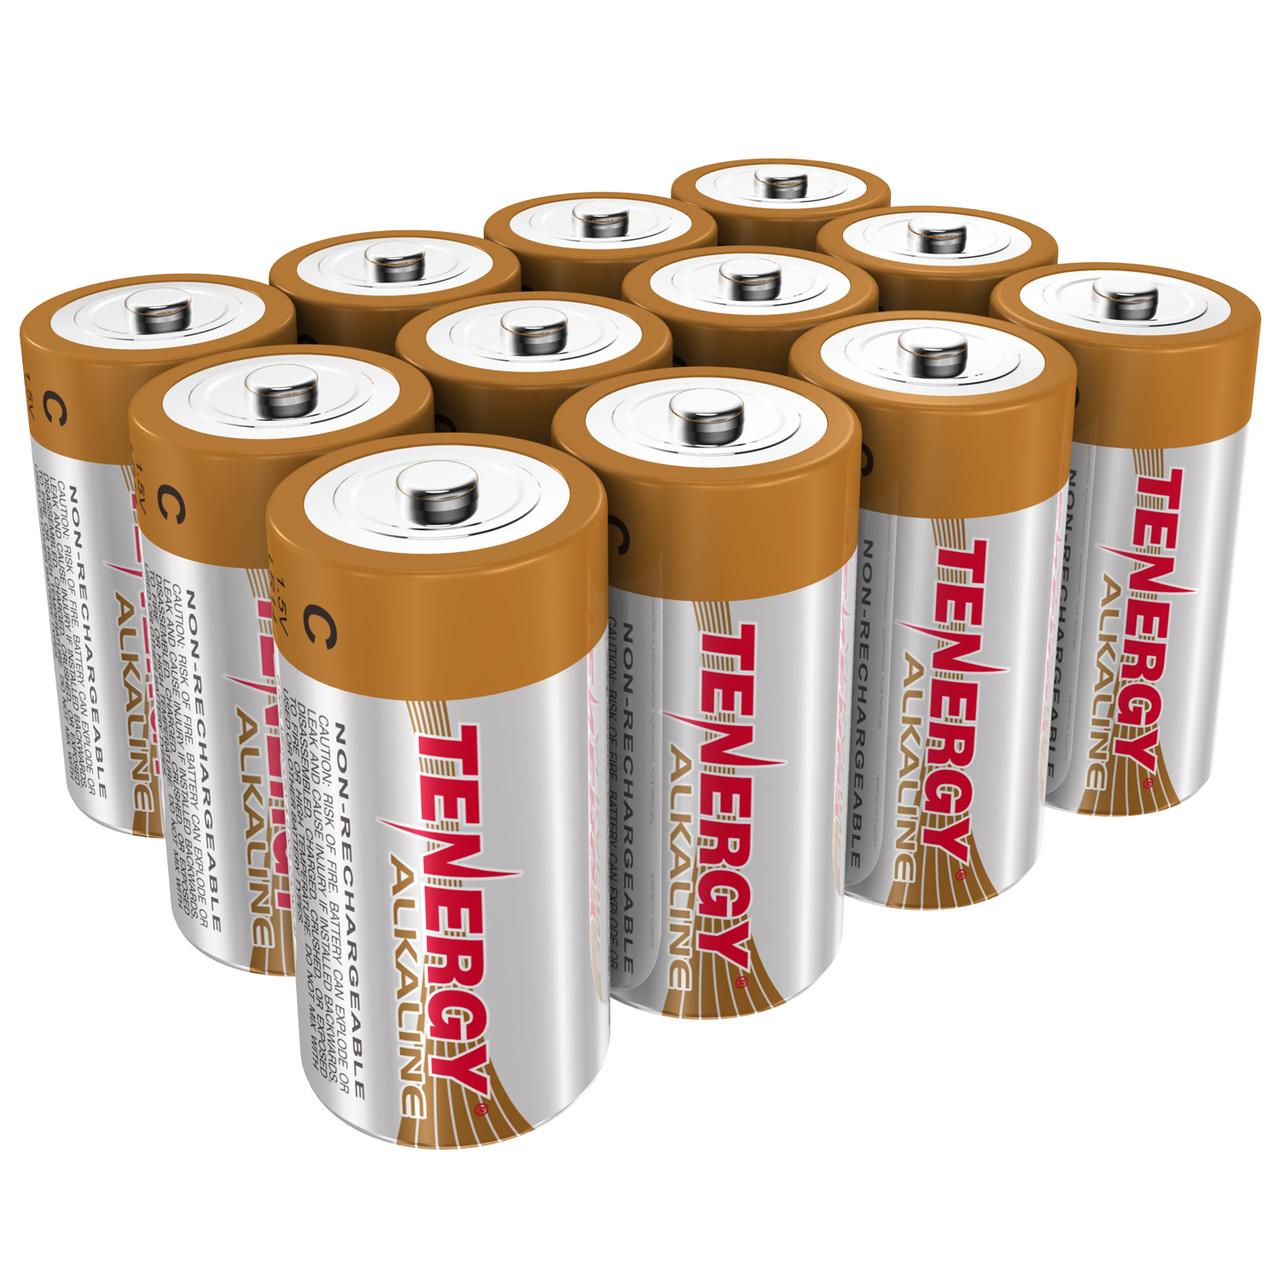 Tenergy C Lr14 Alkaline Batteries 12pk Tenergy